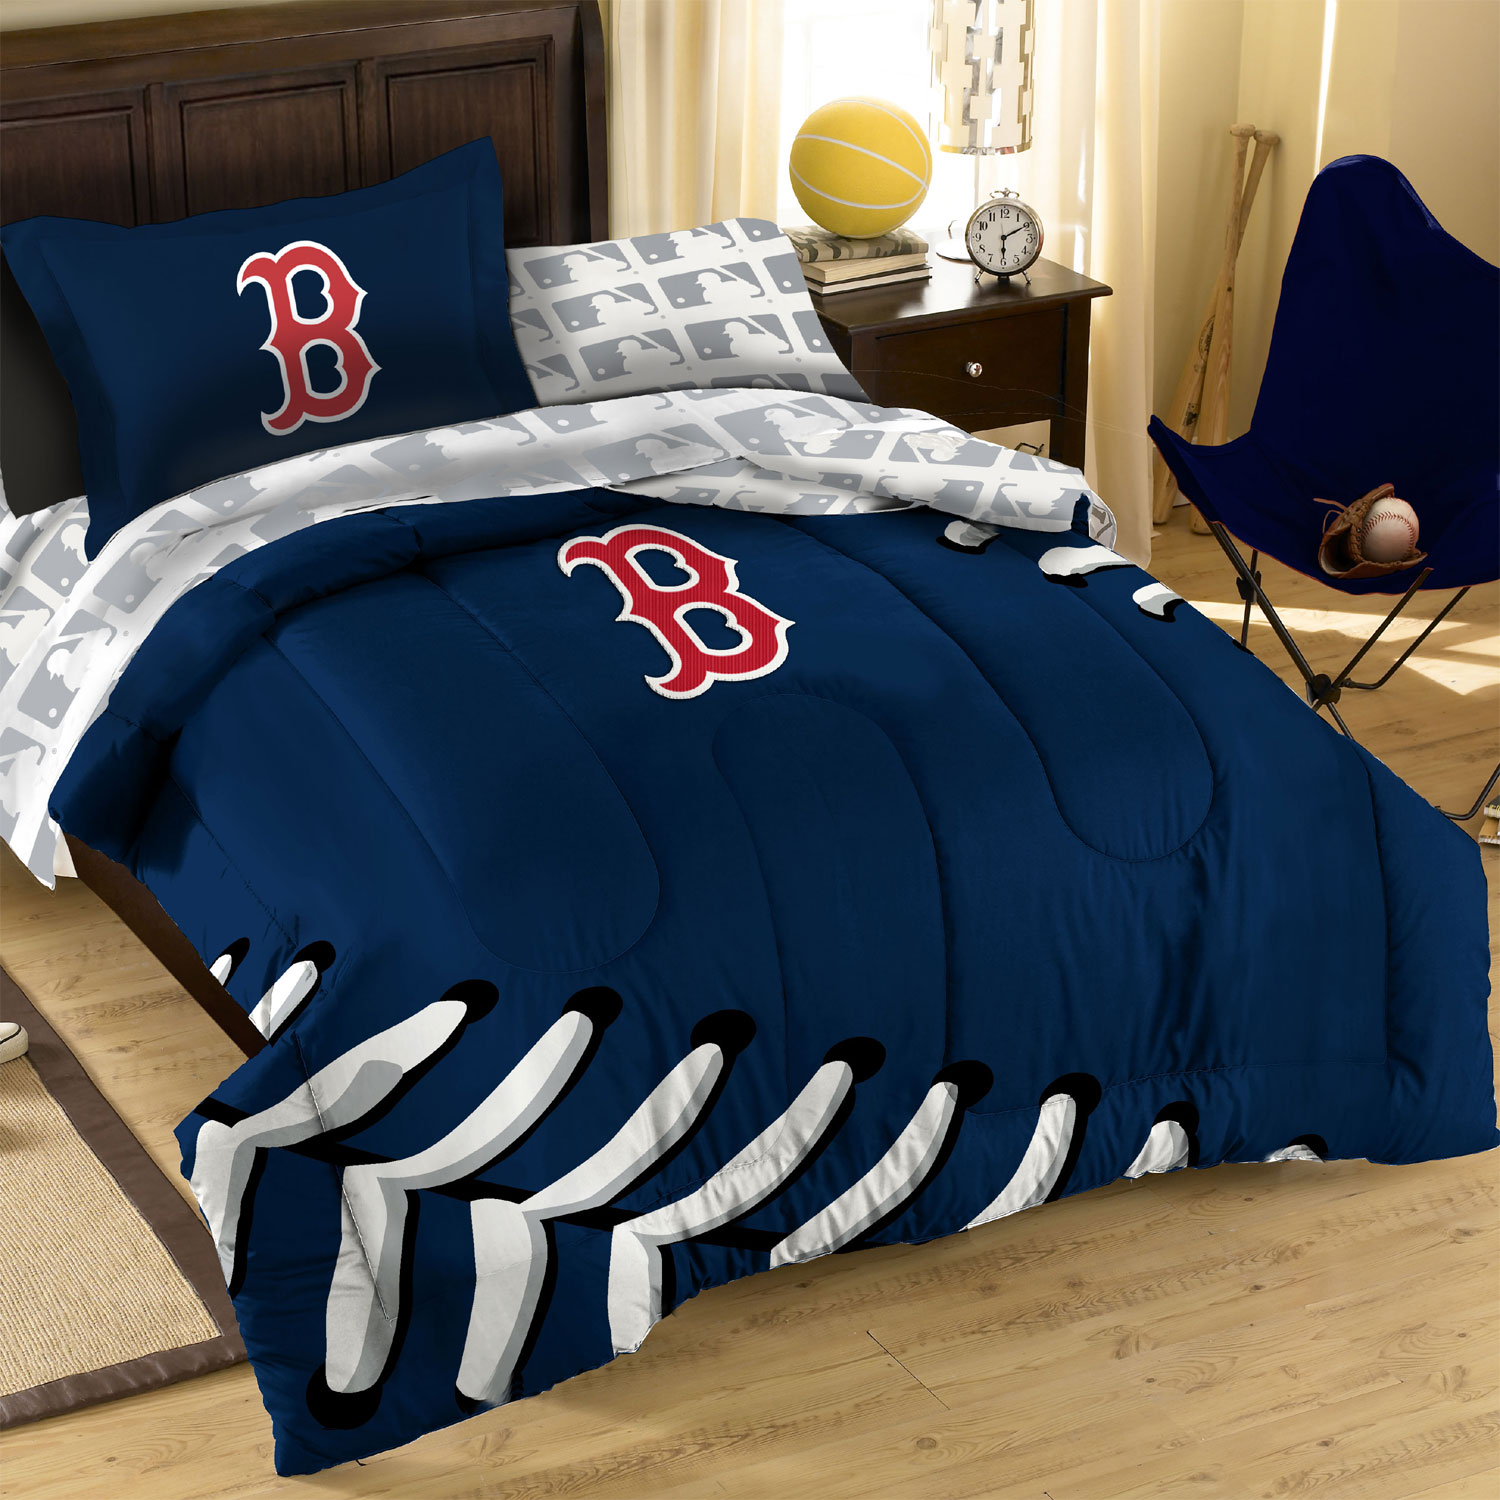 3pc MLB Boston Red Sox Baseball Twin Full Bed Comforter Set